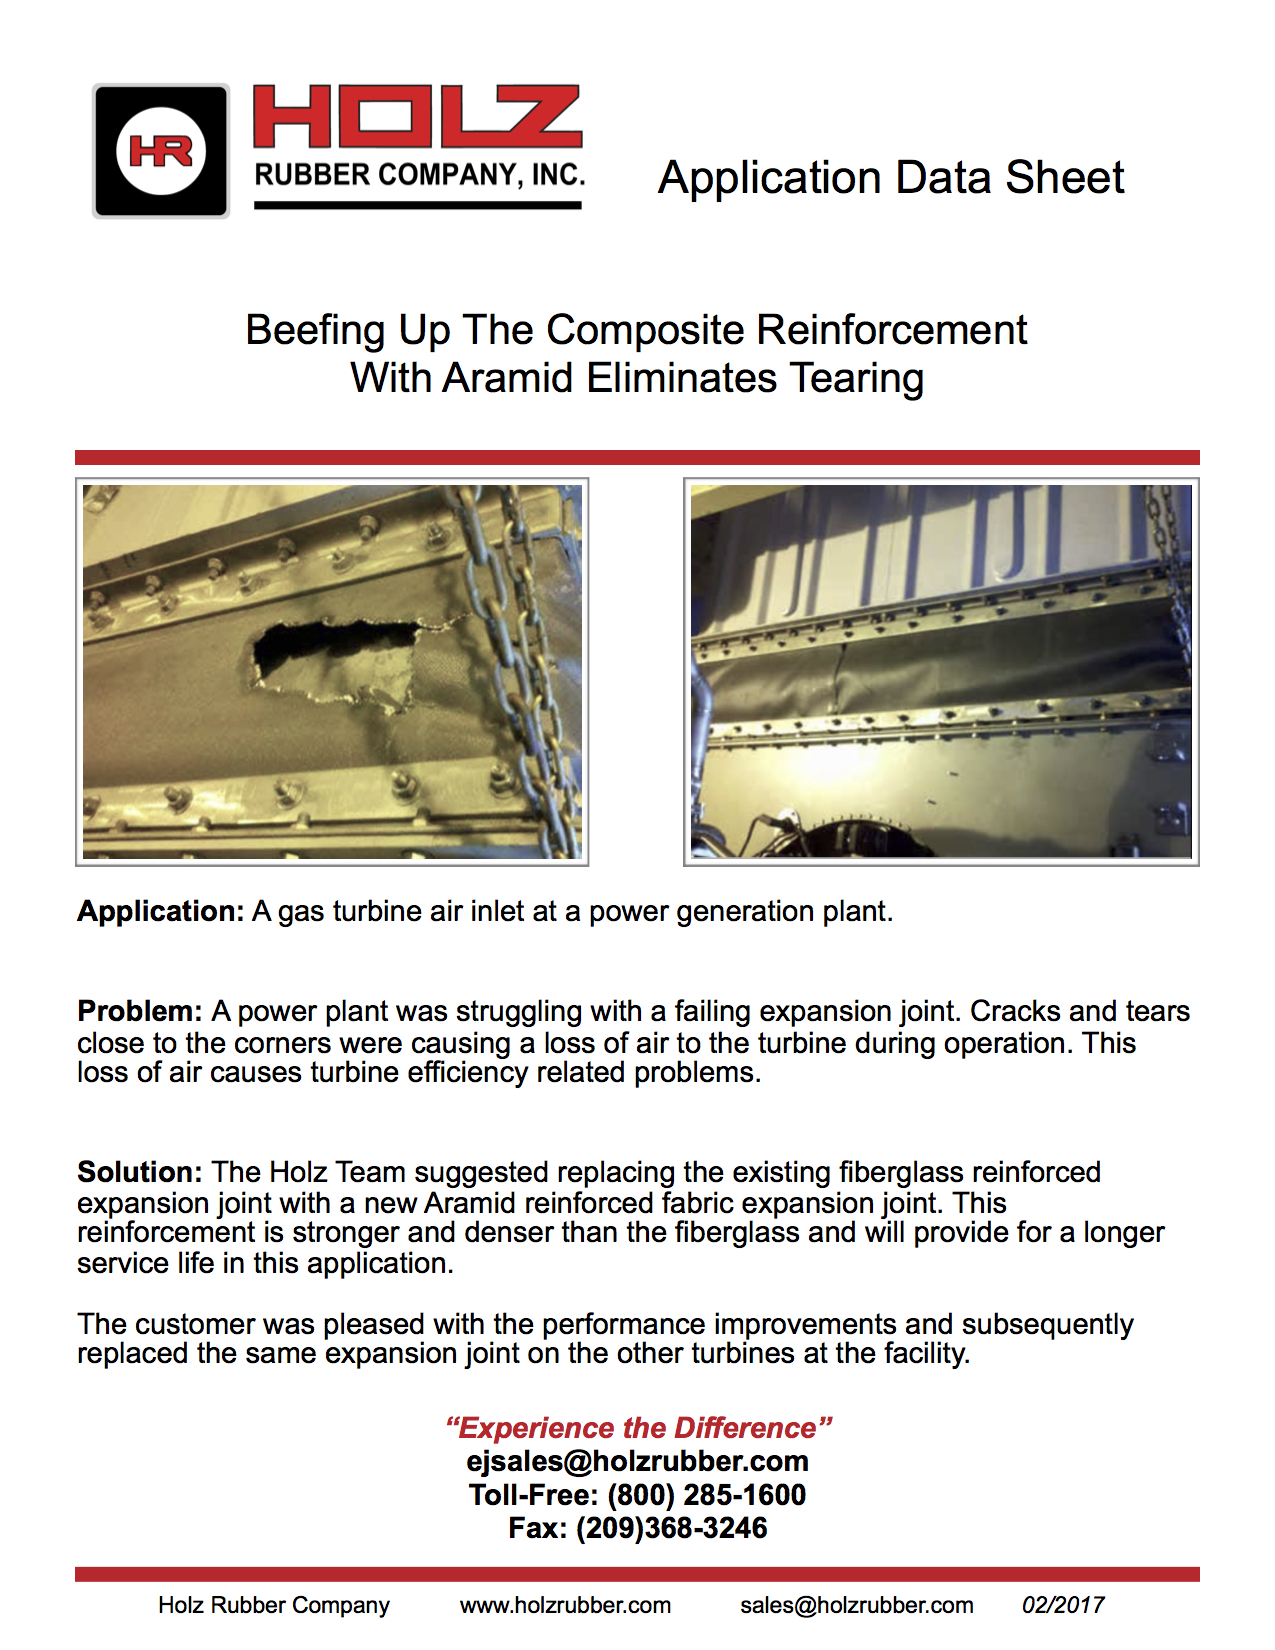 Beefing Up The Composite Reinforcement With Aramid Eliminates Tearing